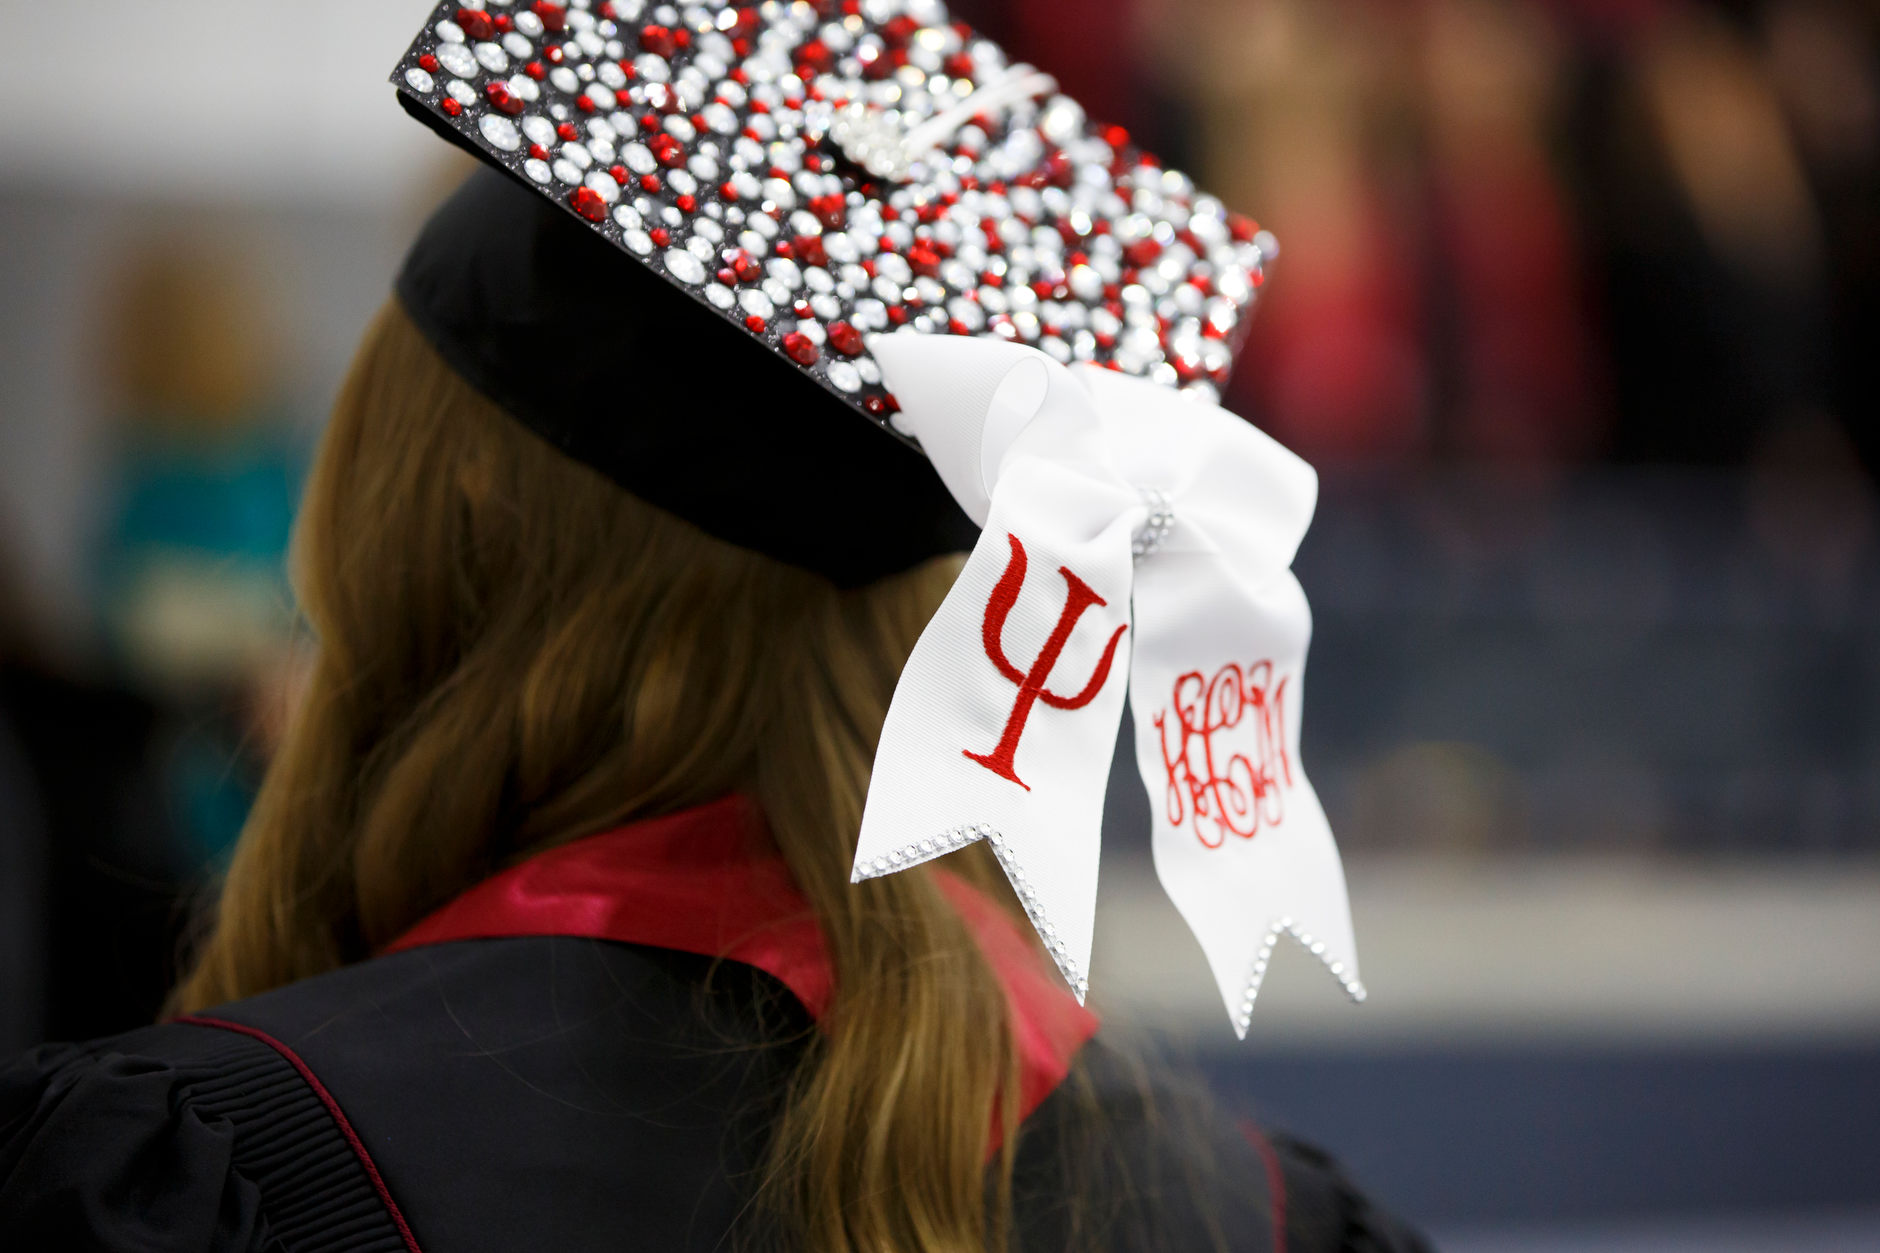 A graduate wears a decorated mortarboard before the Indiana University South Bend Commencement at the University of Notre Dame on Tuesday, May 7, 2019. (James Brosher/Indiana University)